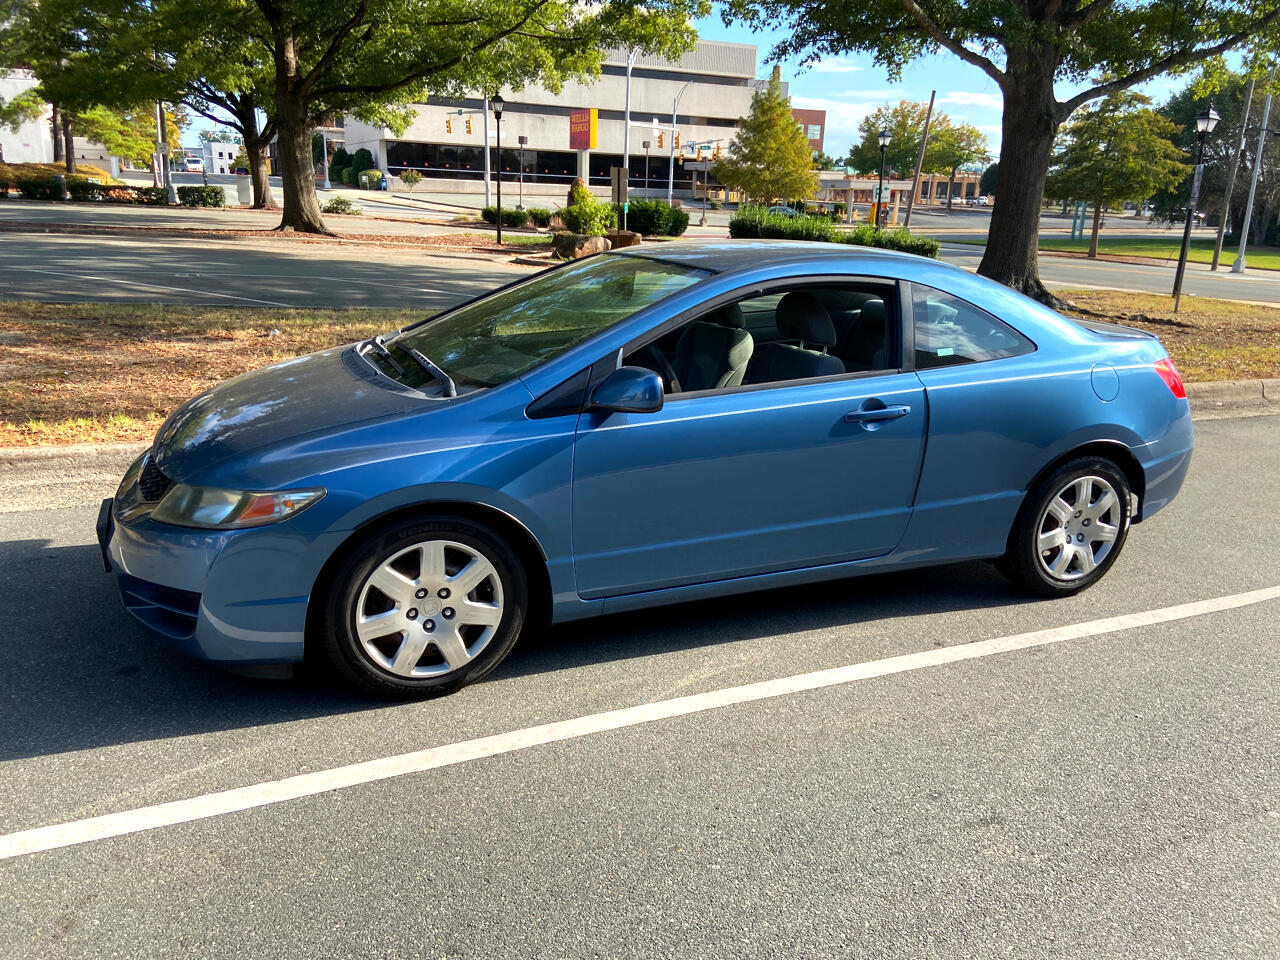 2009 Honda Civic LX Coupe Automatic